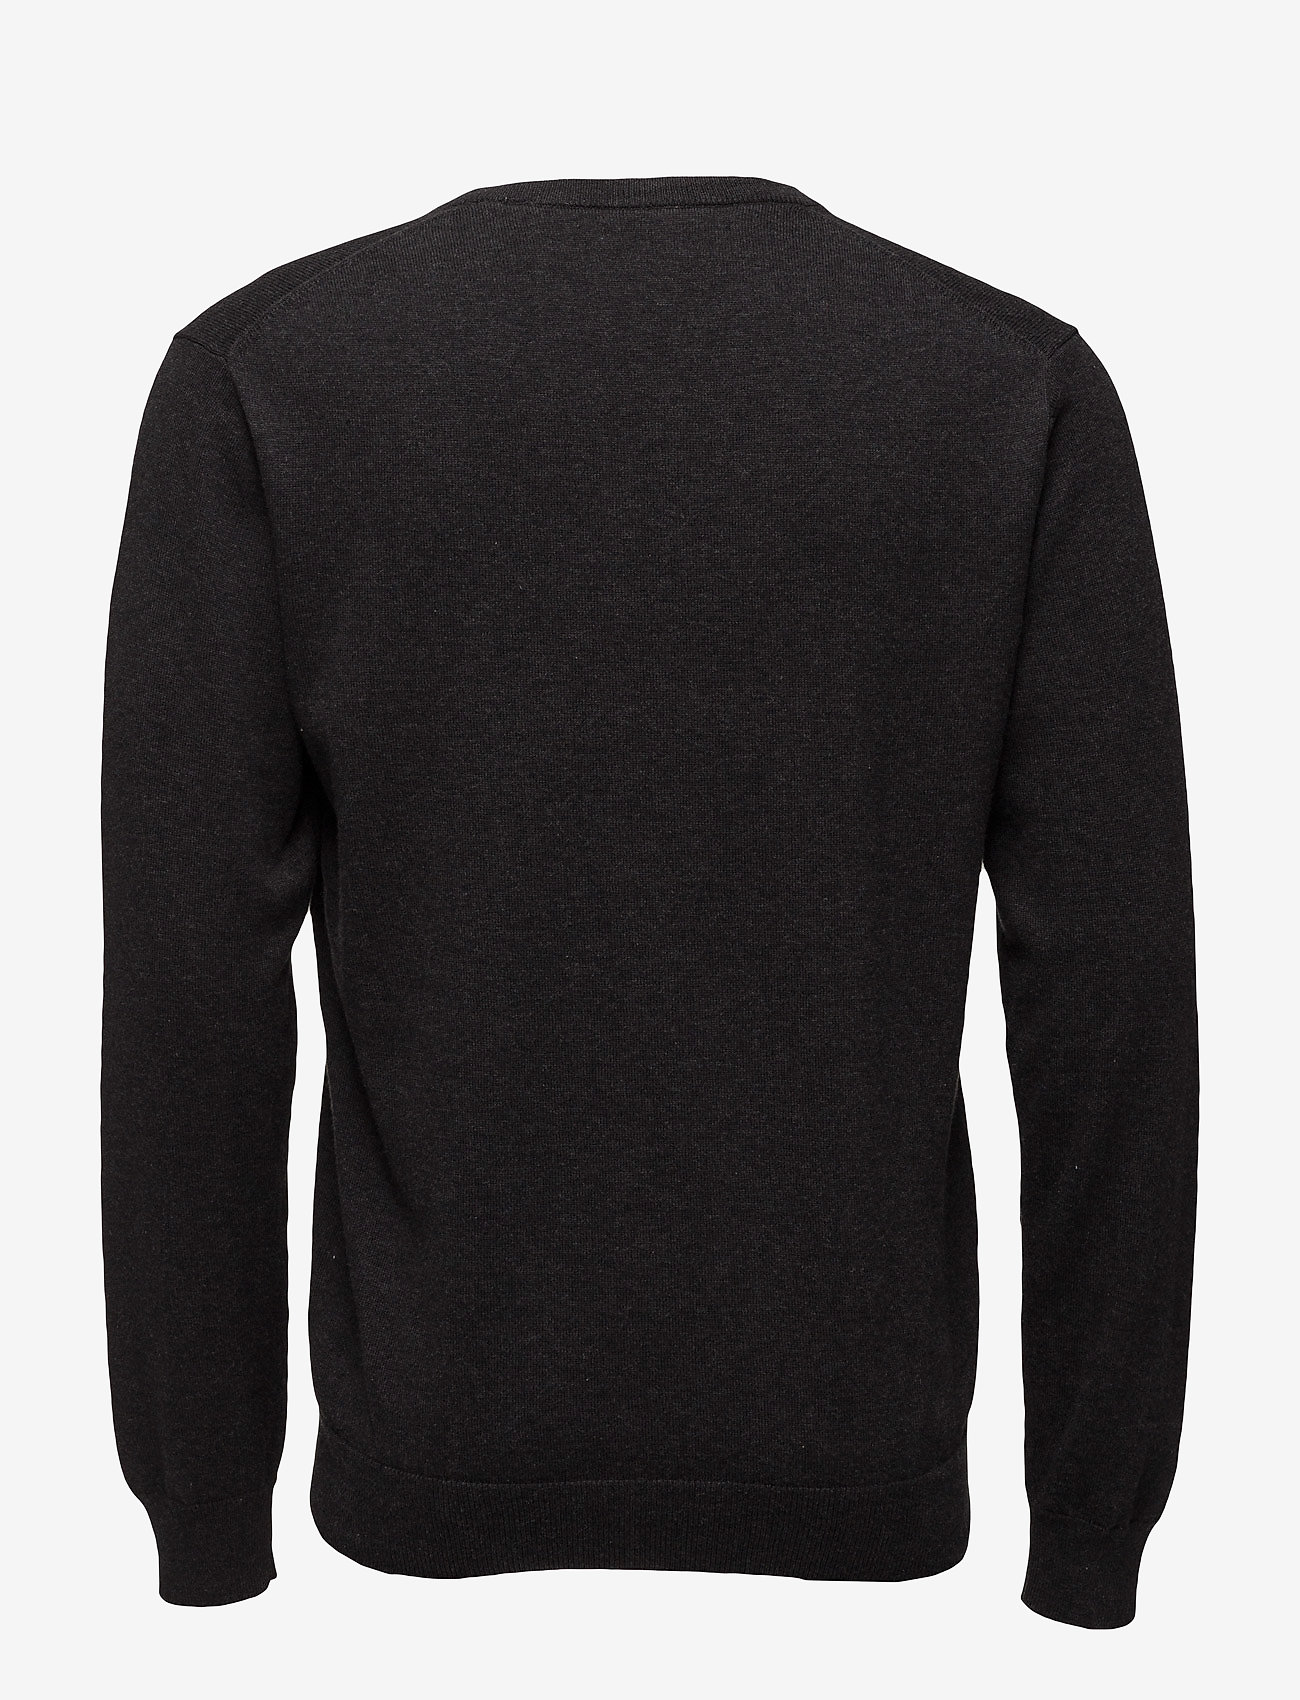 GANT - LIGHT WEIGHT COTTON V-NECK - basisstrikkeplagg - dk charcoal melange - 1